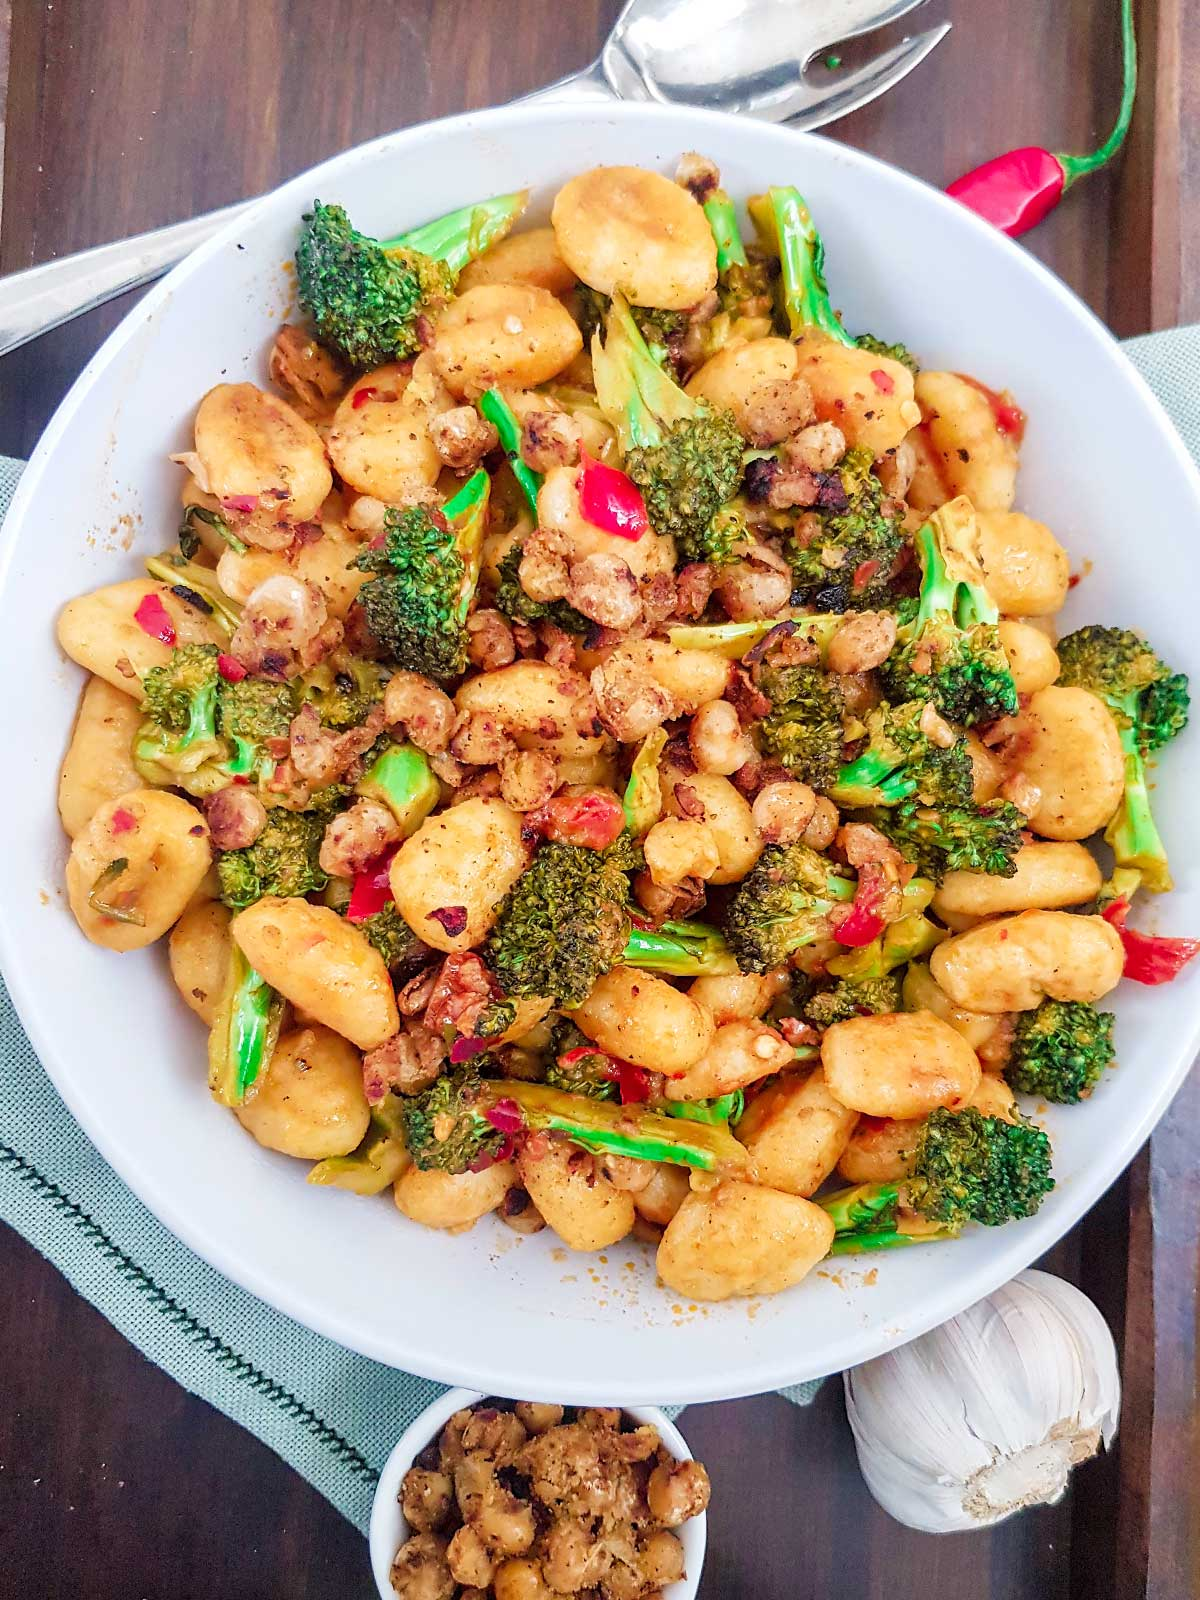 Pan fried gnocchi with broccoli served in a white bowl topped with chickpea crumble